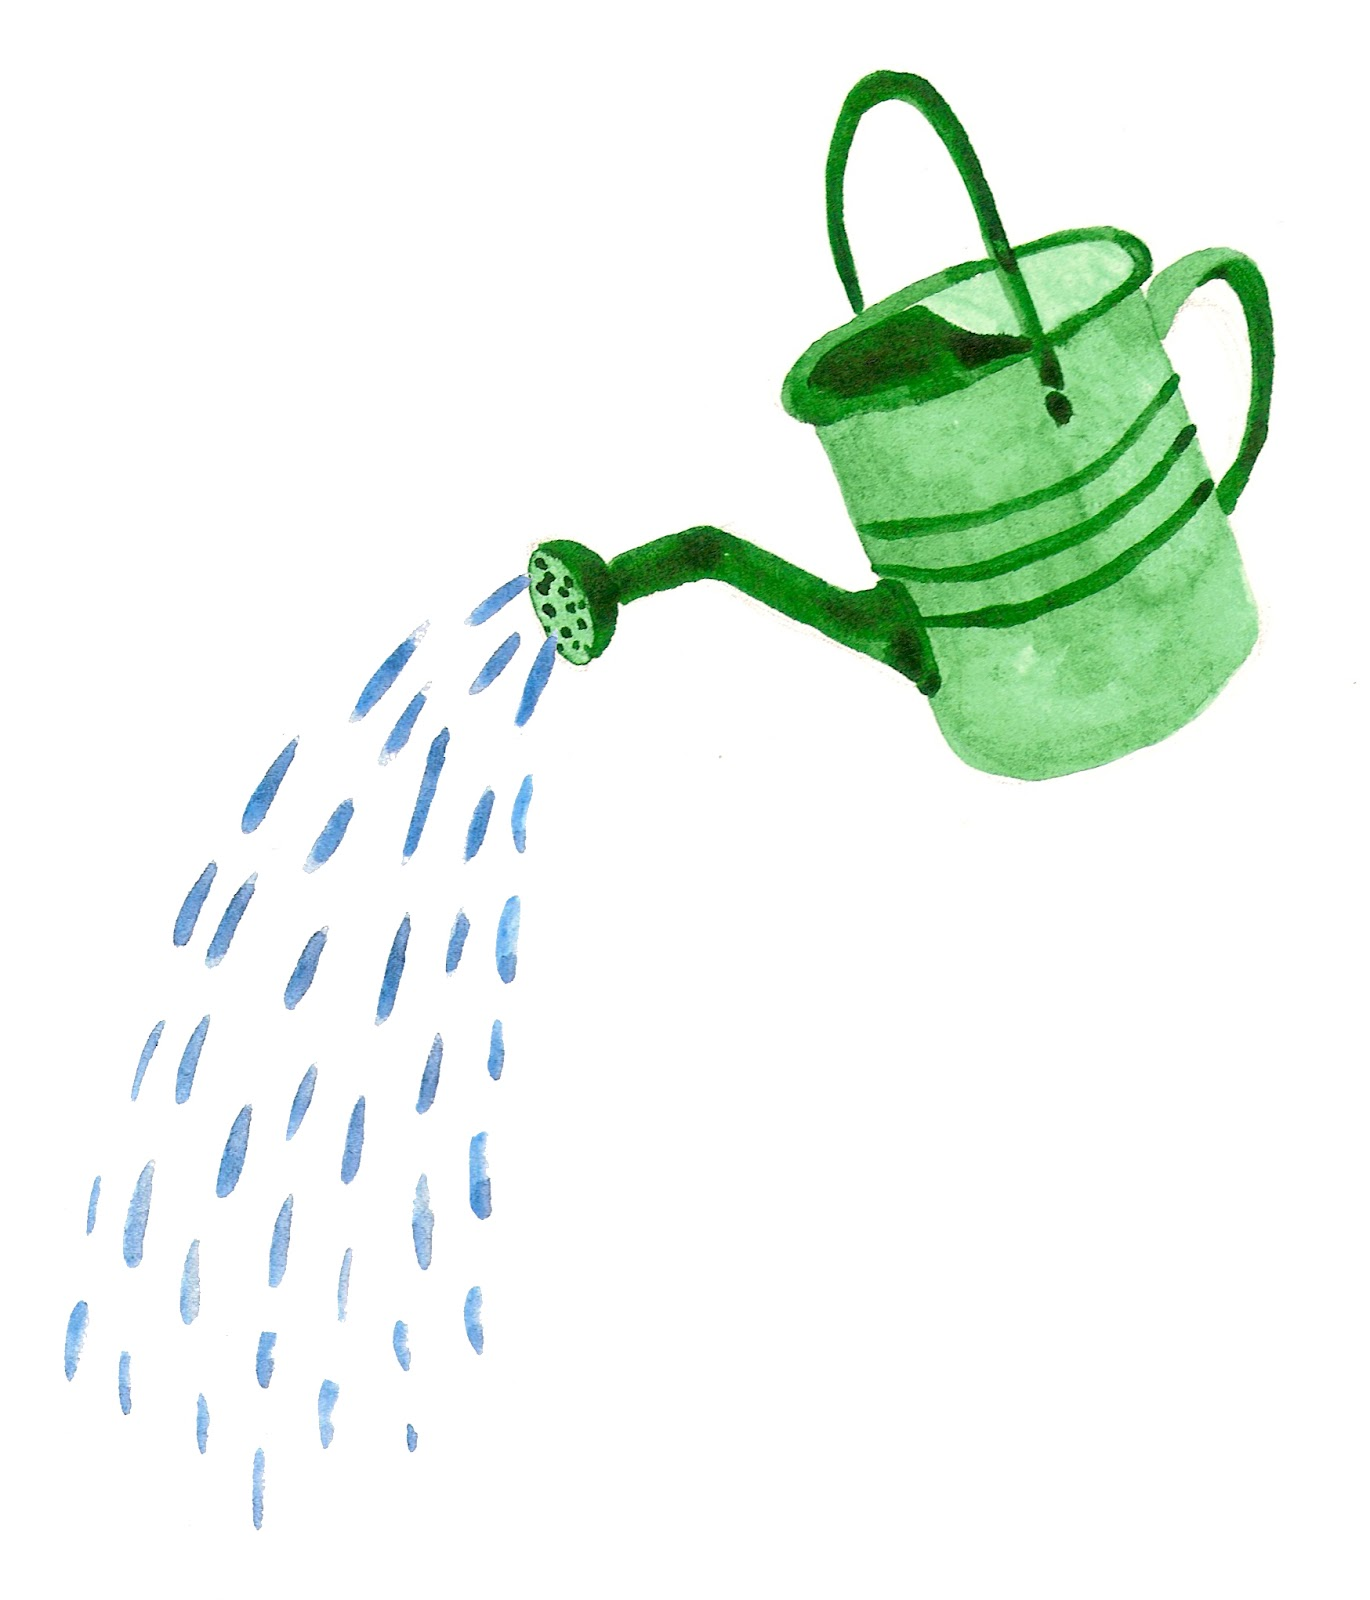 Watering Can clipart WikiClipArt 2 art can Watering